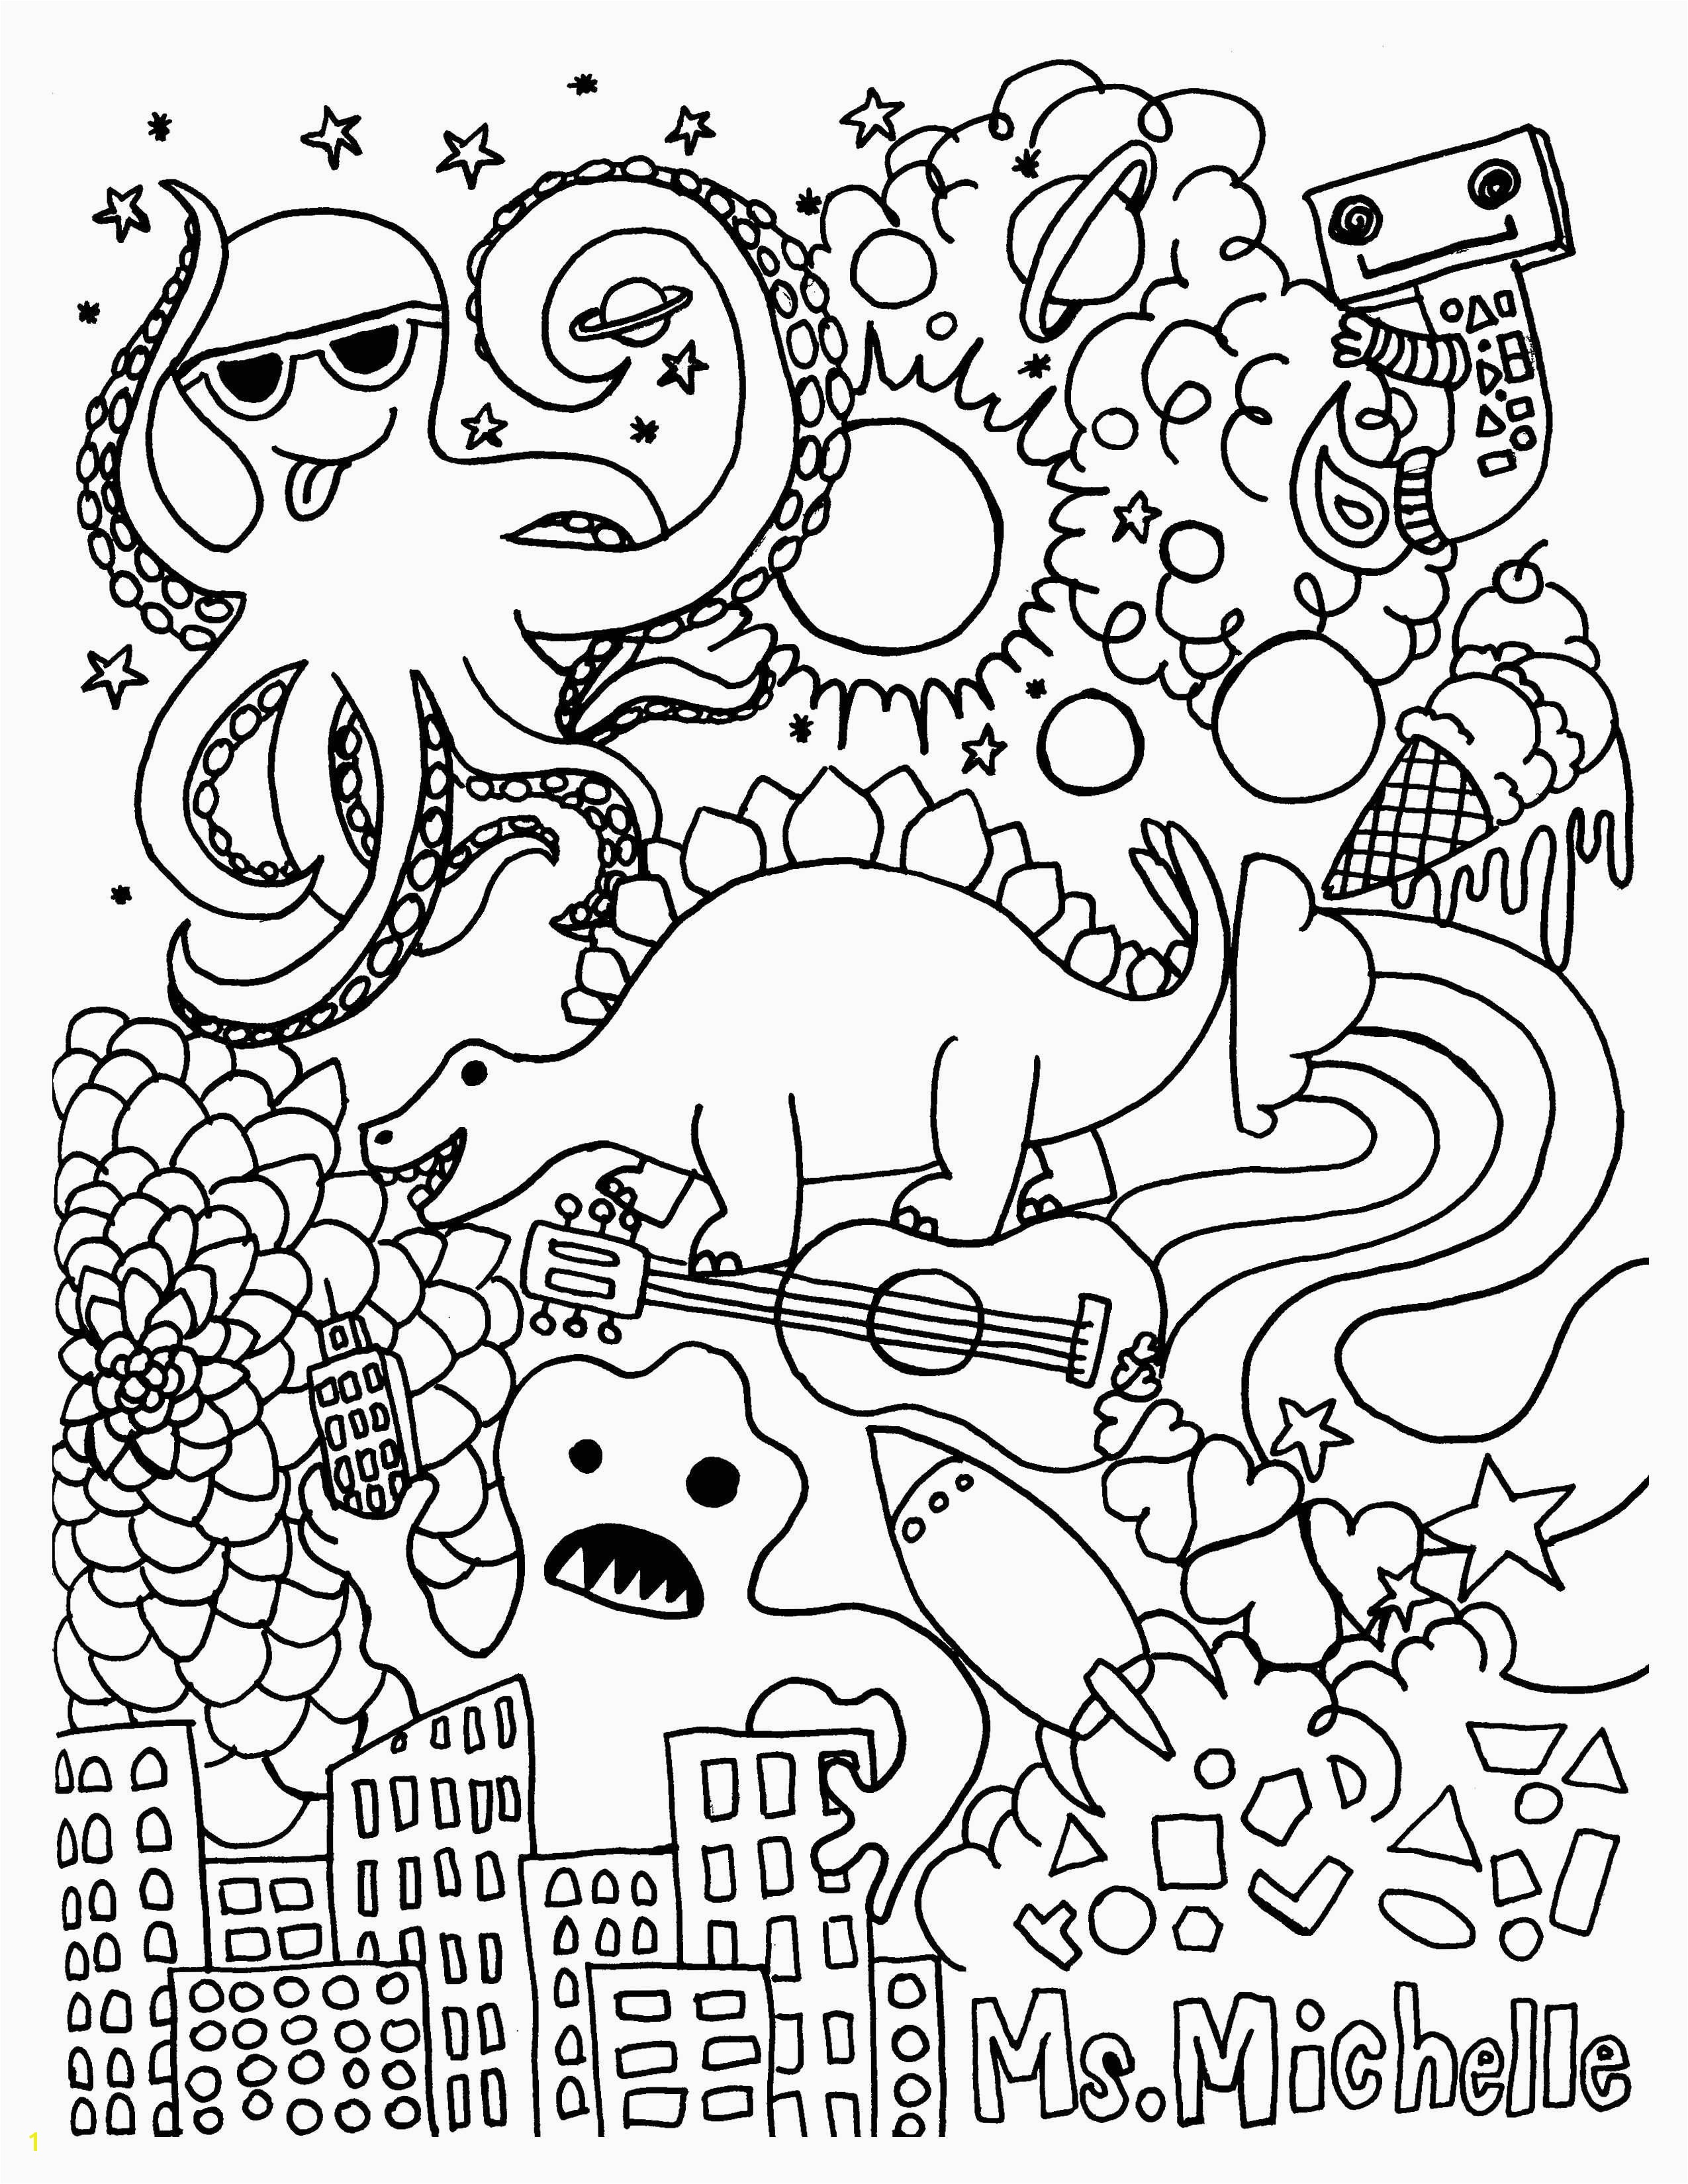 Autumn Coloring Pages Preschool 2019 Free Coloring Pages for Halloween Unique Best Coloring Page Adult Od